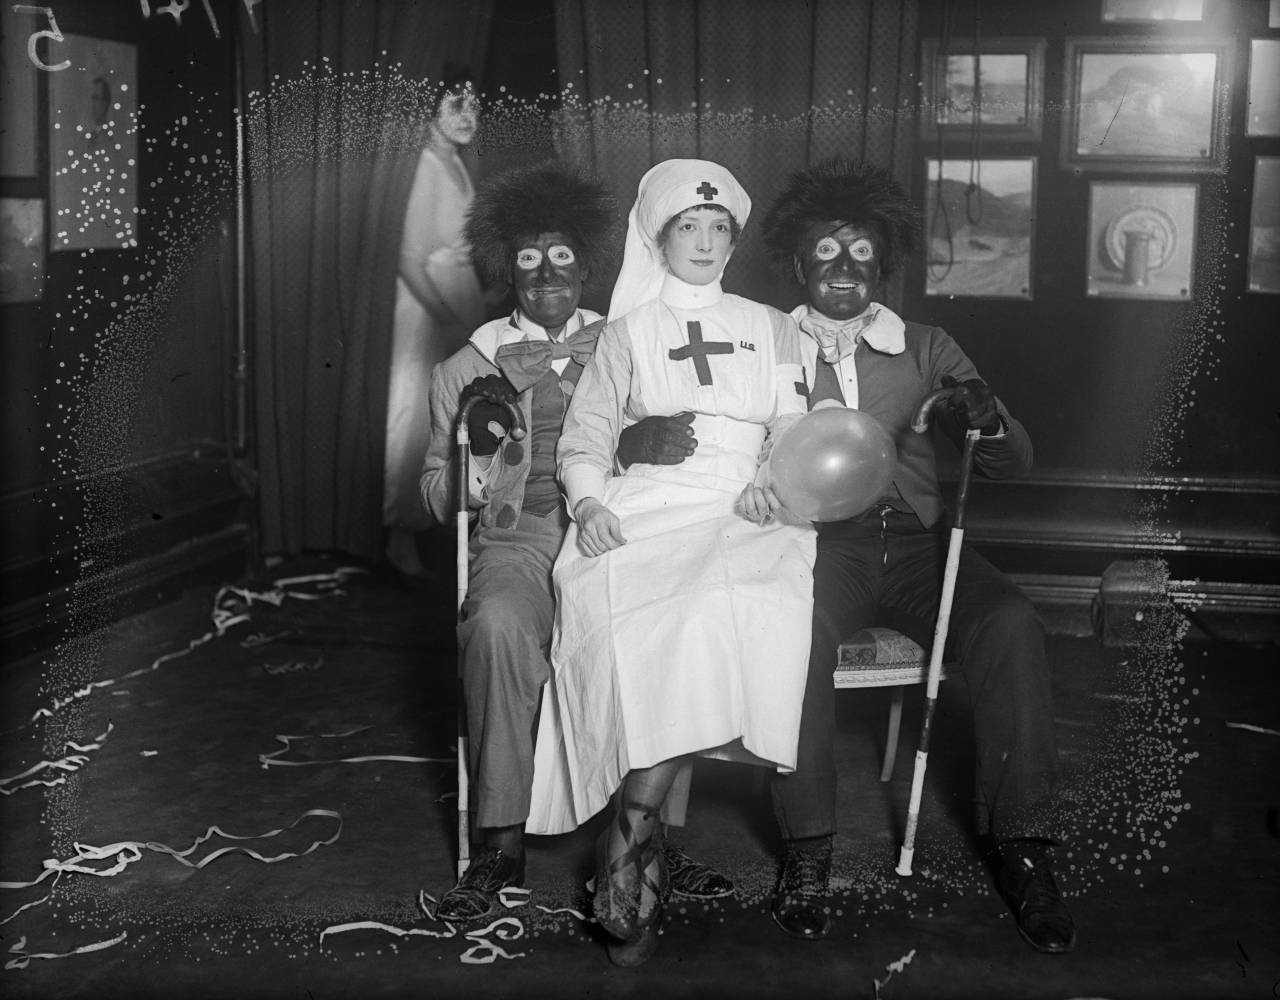 January 1919: Fancy dress for an 'American' night at Princes; a woman dressed as a nurse and two men in 'golliwog' outfits which are based on the appearance of a gallant hero in a series of children's books in verse by US writer Bertha Upton. (Photo by A. R. Coster/Topical Press Agency/Getty Images)